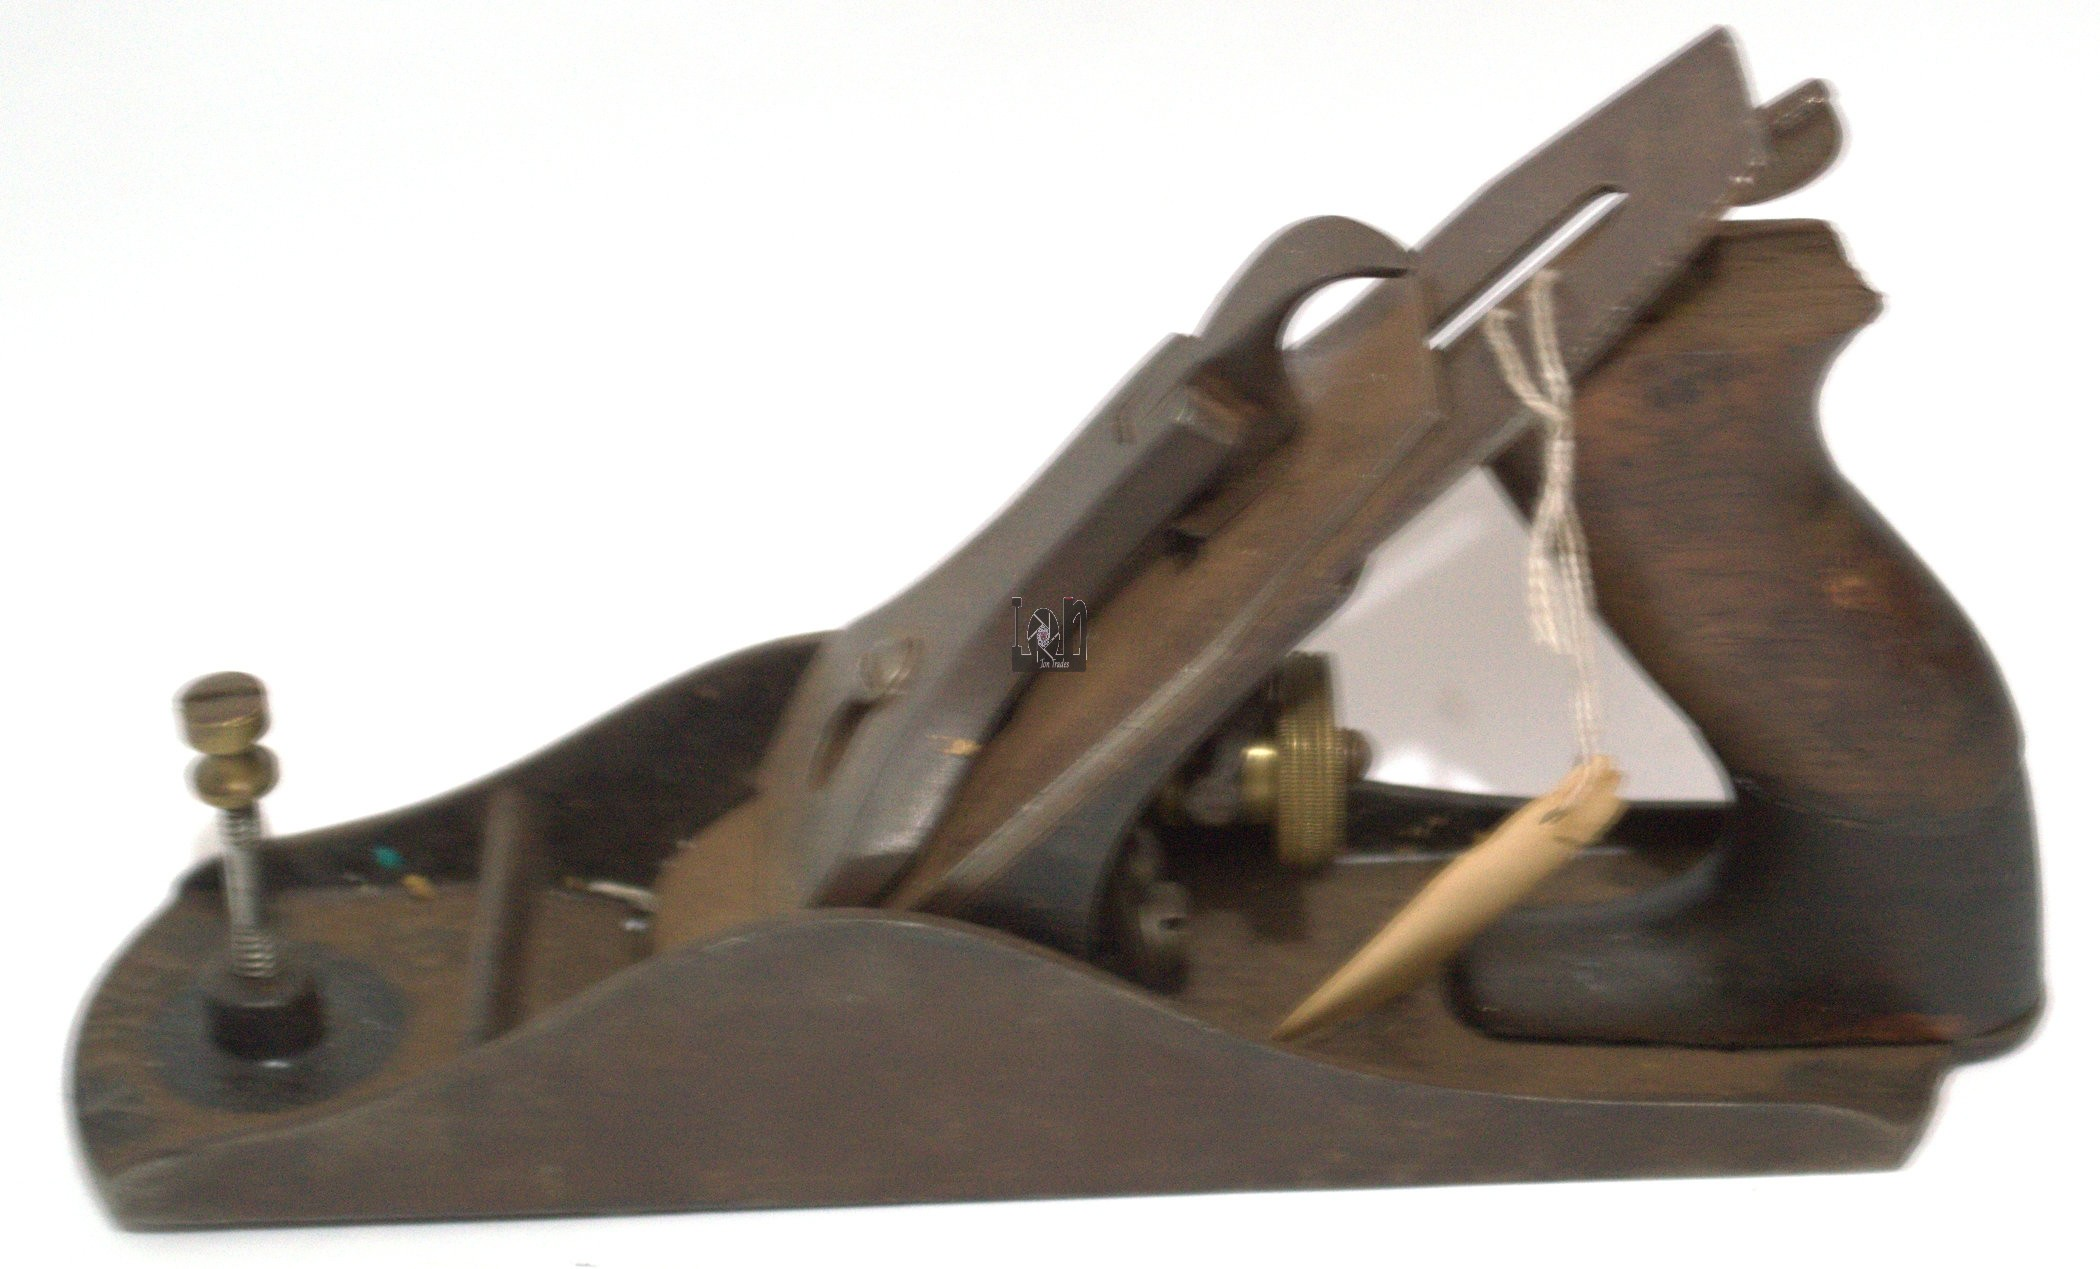 Vintage Stanley Bailey No 4 Blane Hand Plane Woodworking Tools SW Antique